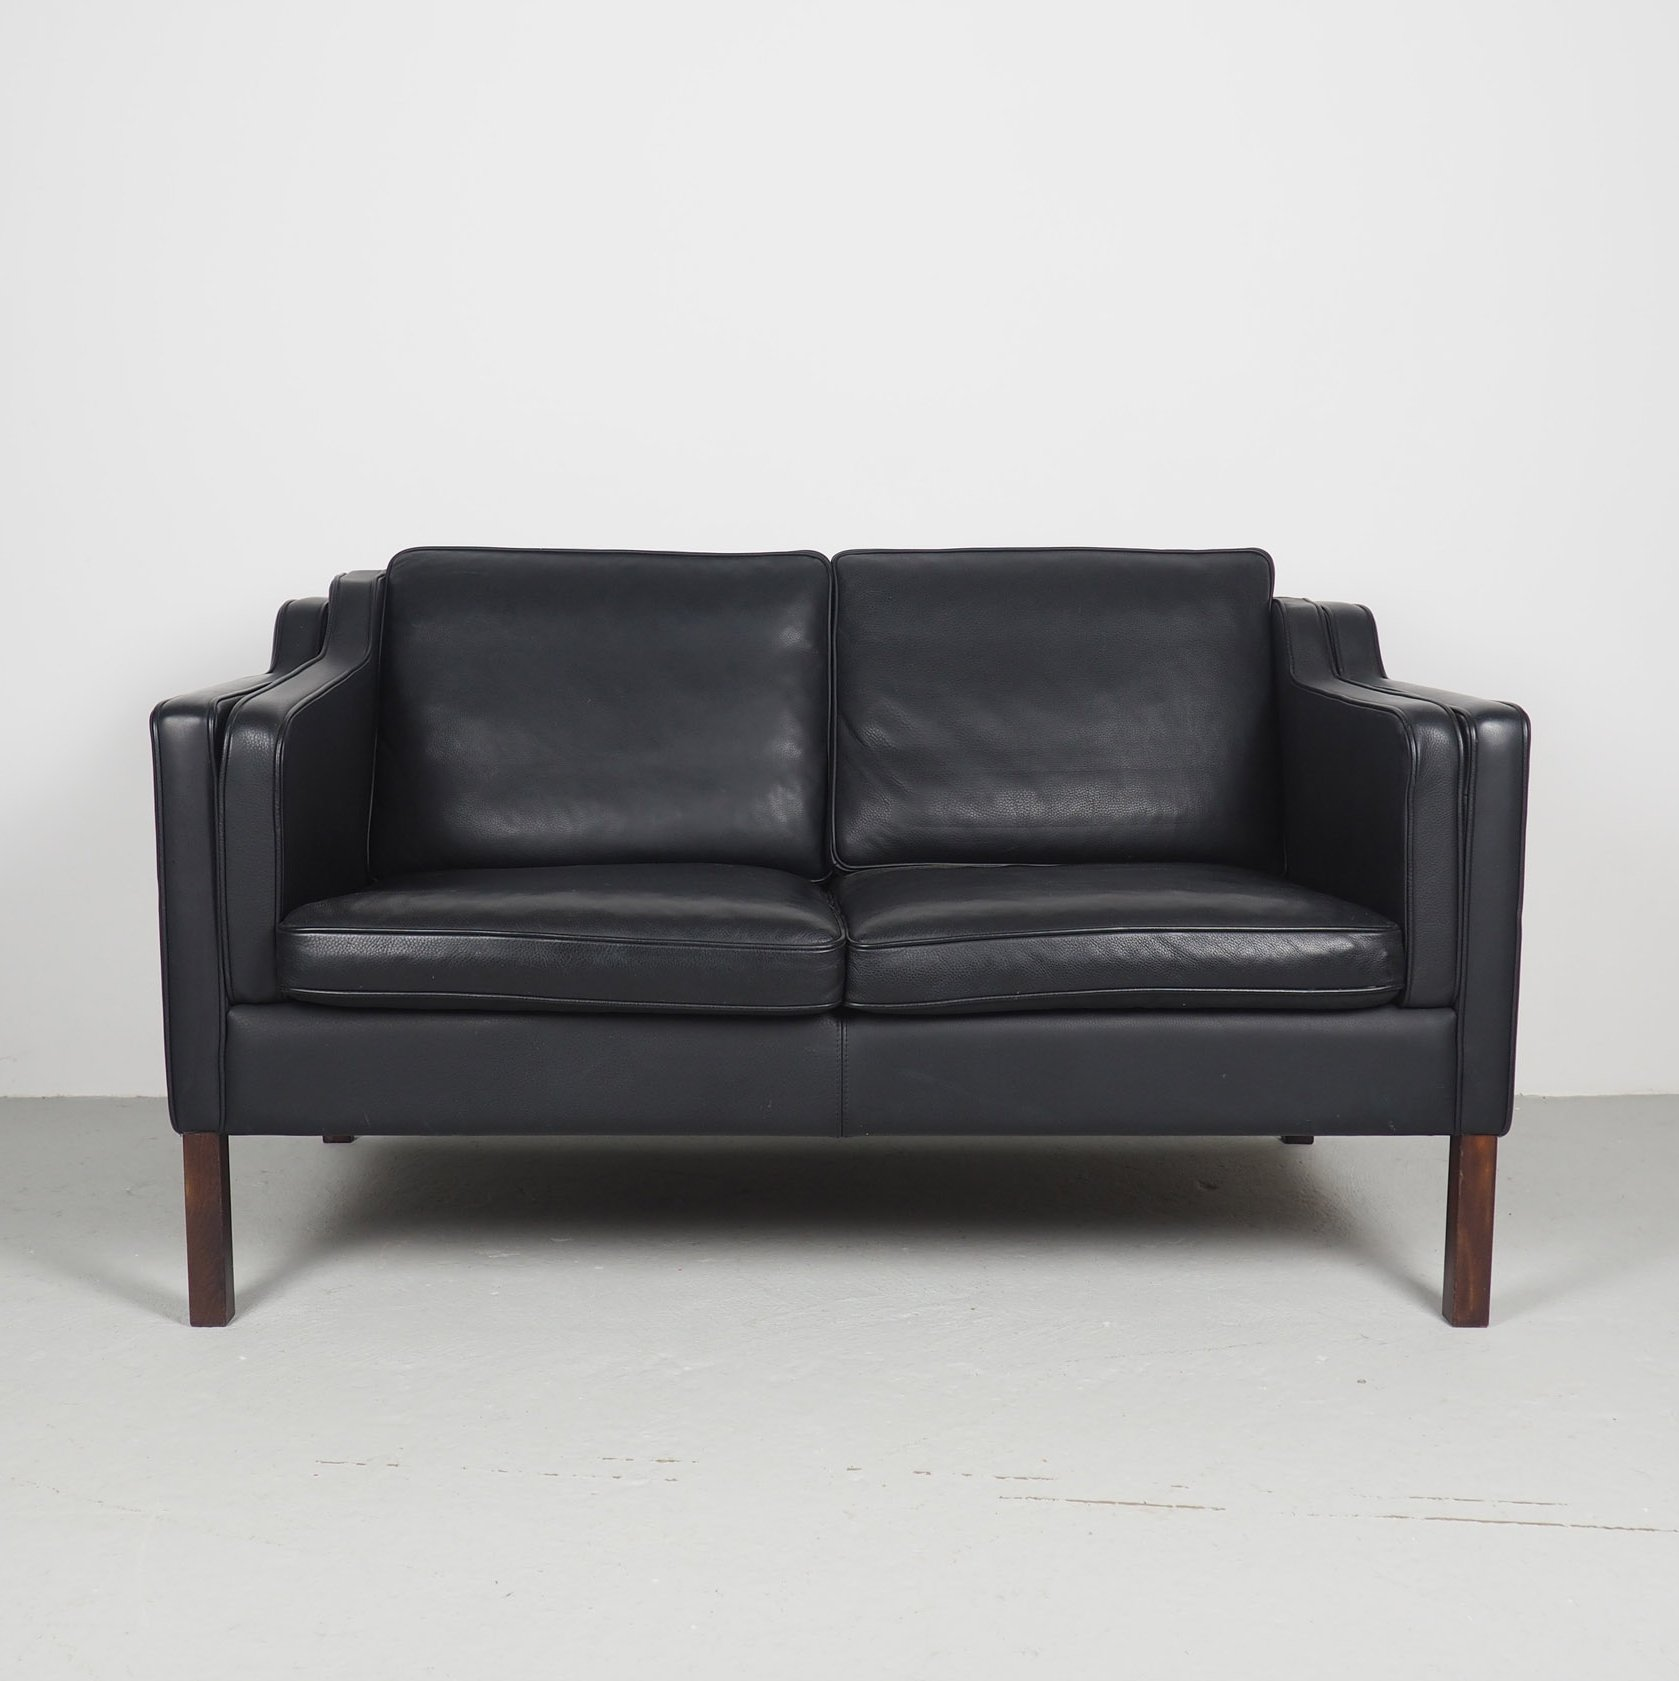 Black Leather Vintage 2 Seater Sofa By